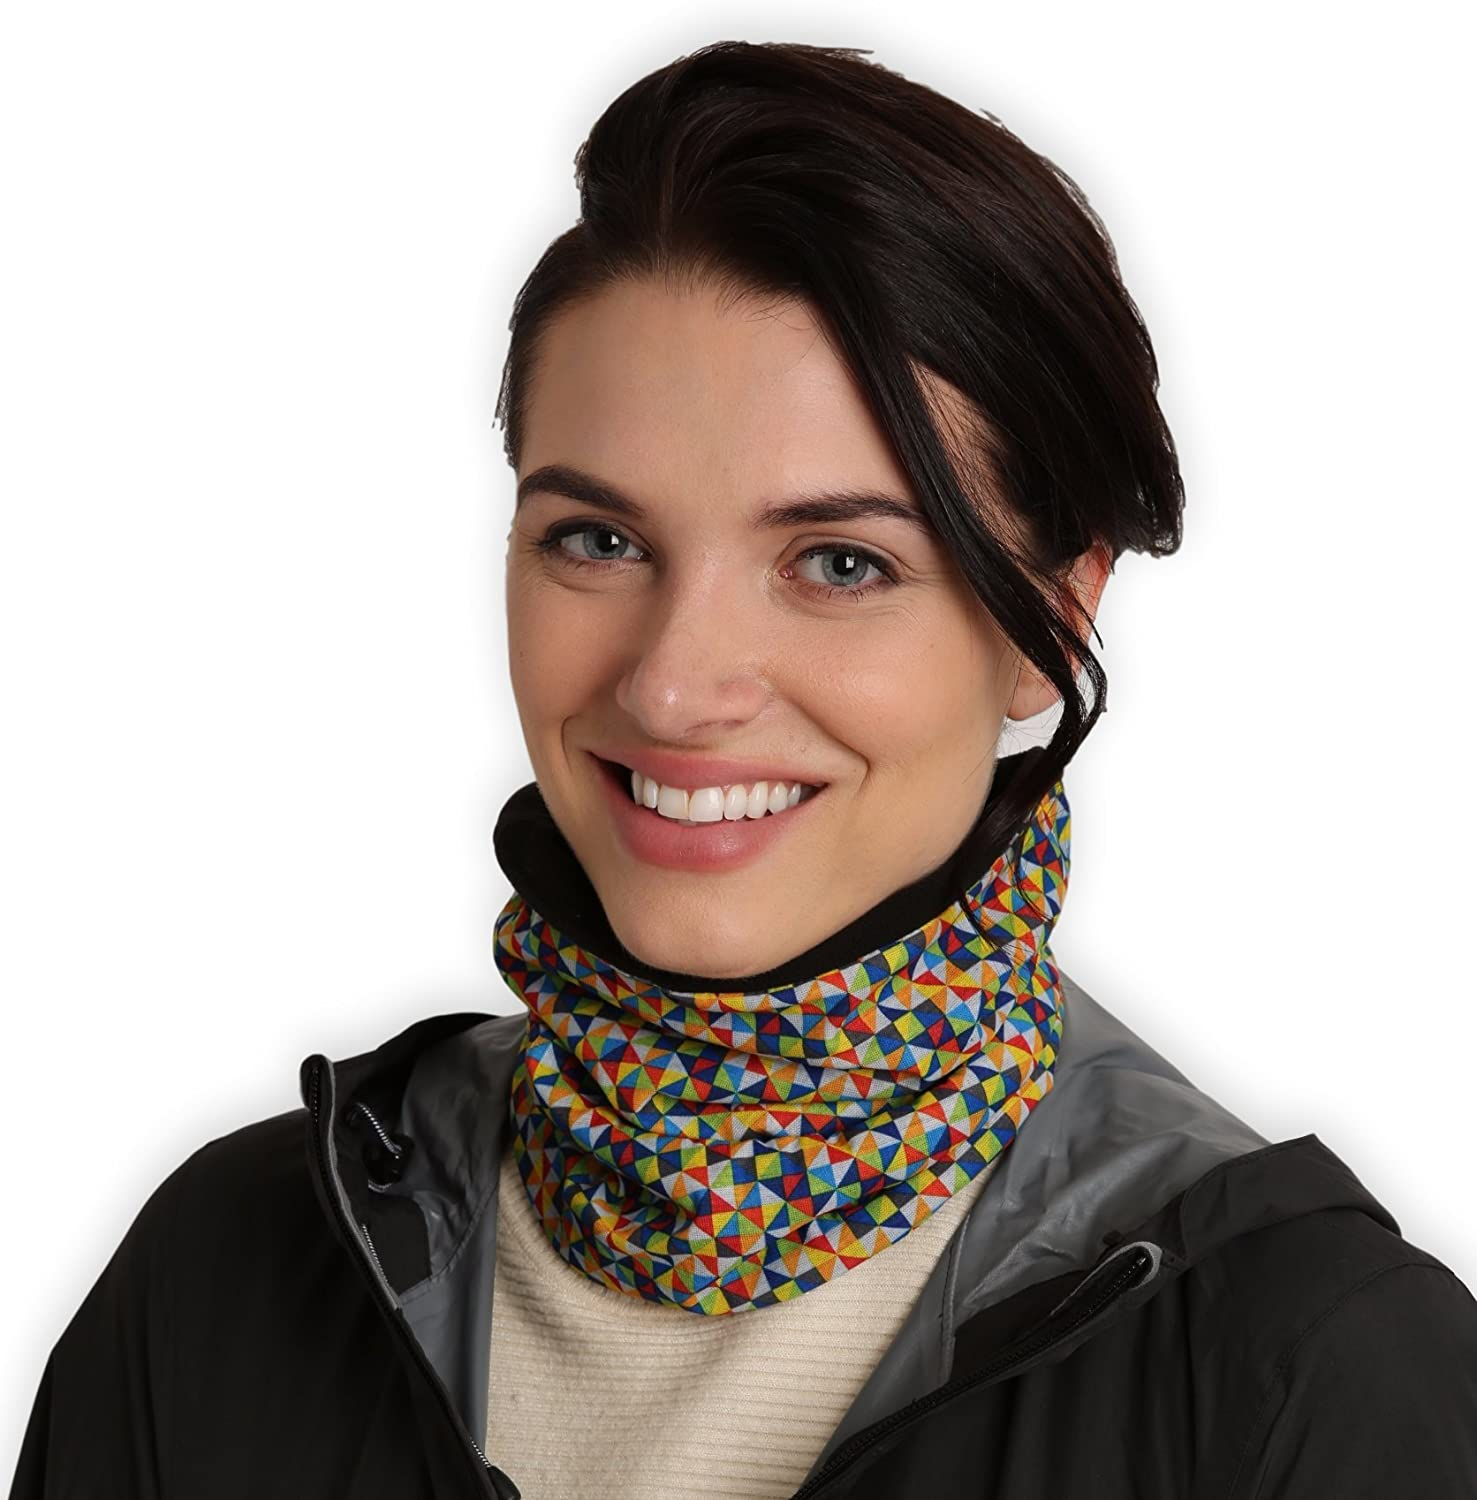 Womens Neck Warmer - Winter Fleece Neck Gaiter, Ski Tube Scarf - Cold Weather Face Mask Cover for Thermal Retention